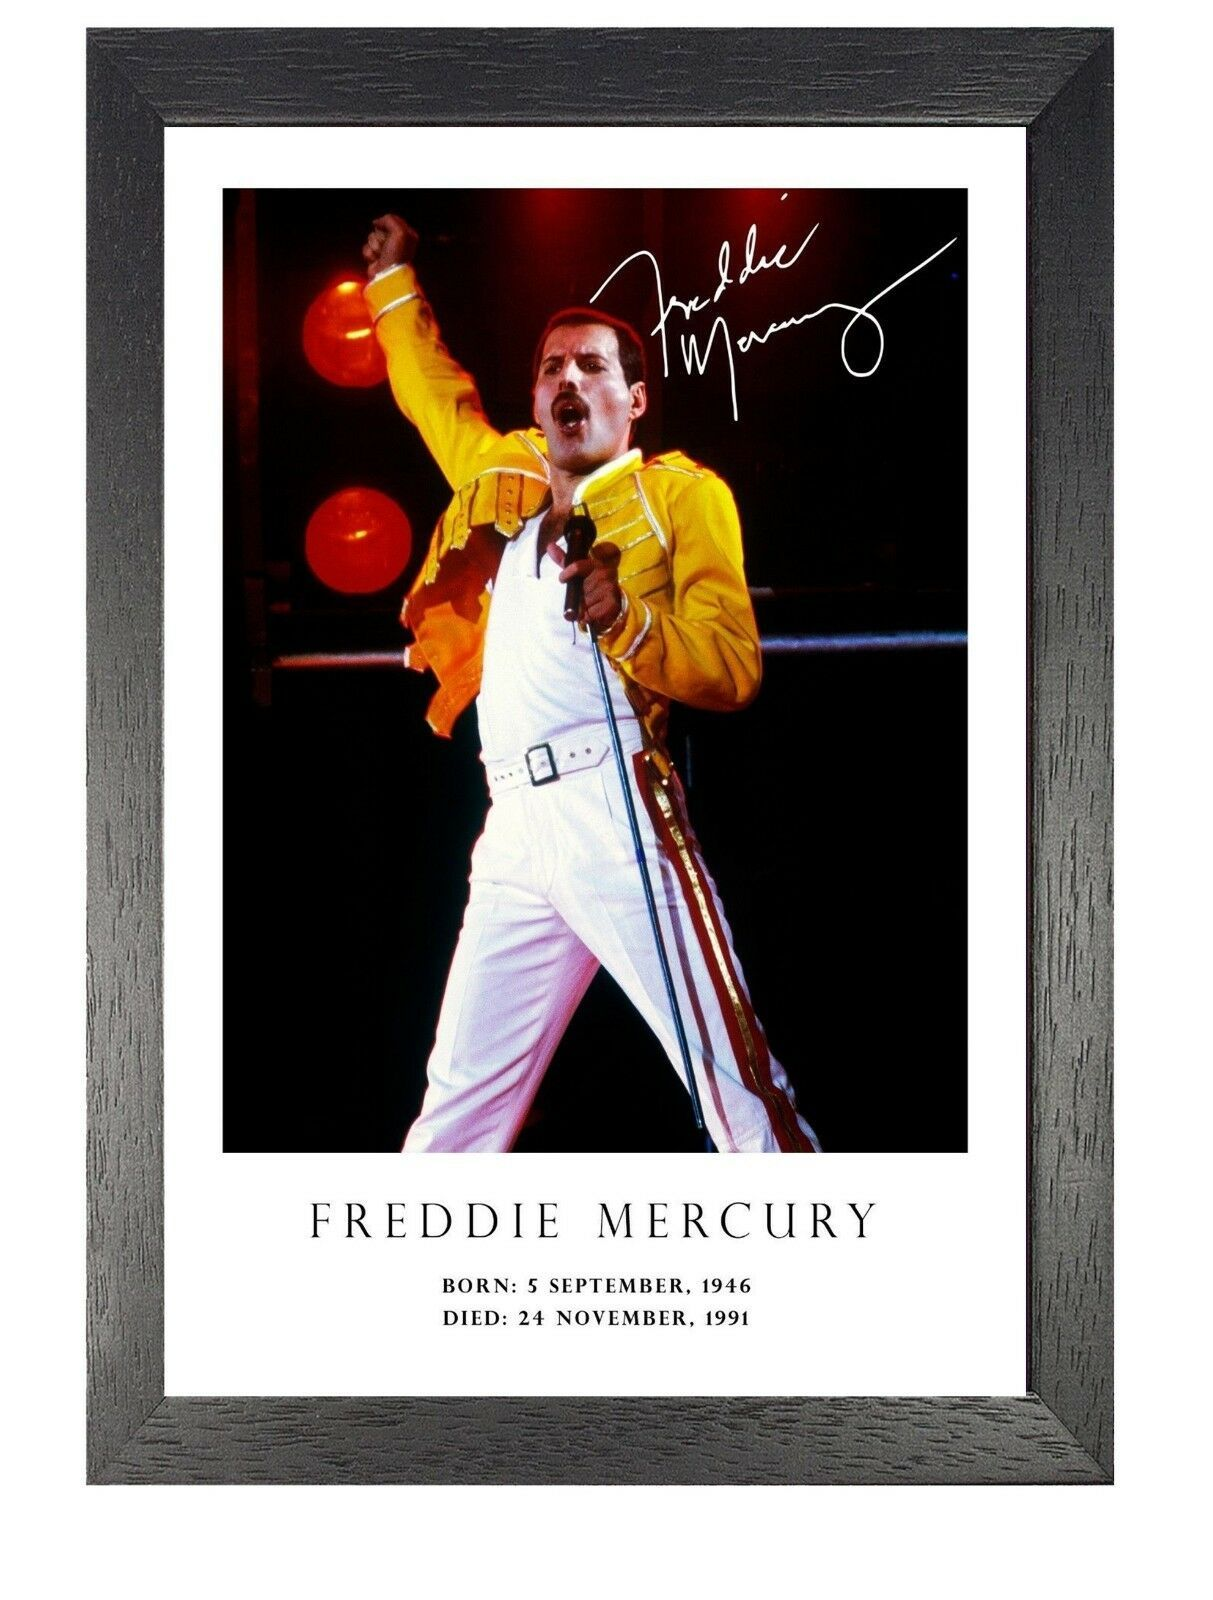 Freddie Mercury 31 British Singer Poster Signed Photo Queen Music Star on  Stage nozztra.com